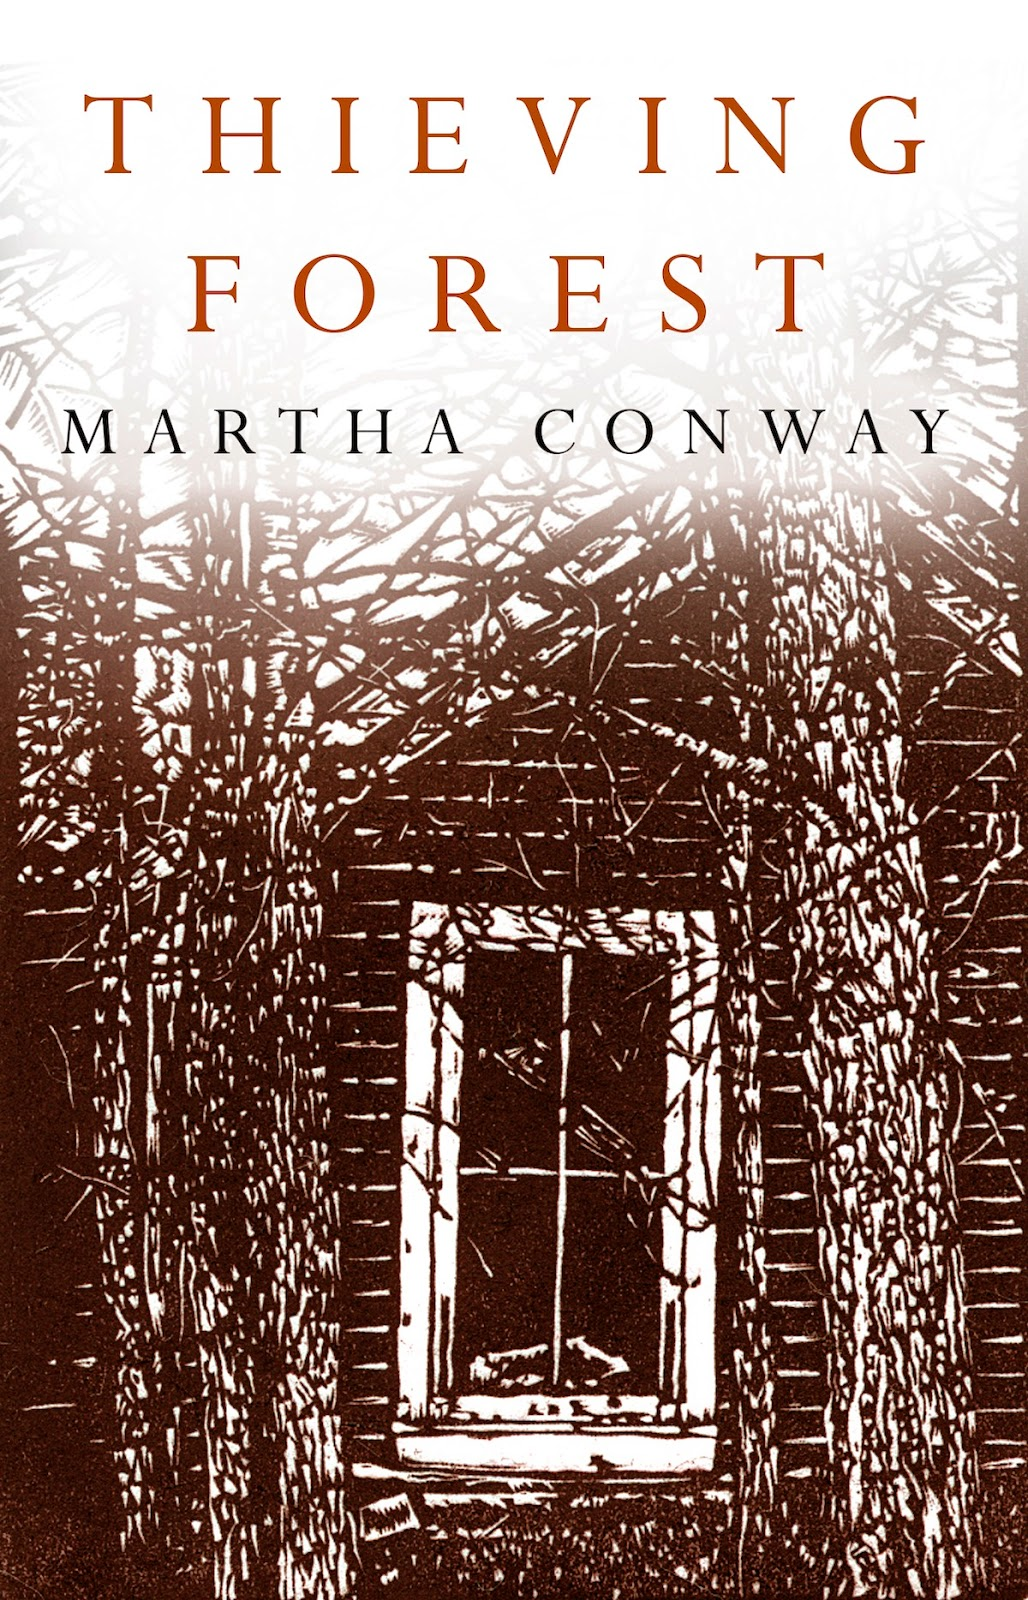 Interview with novelist Martha Conway